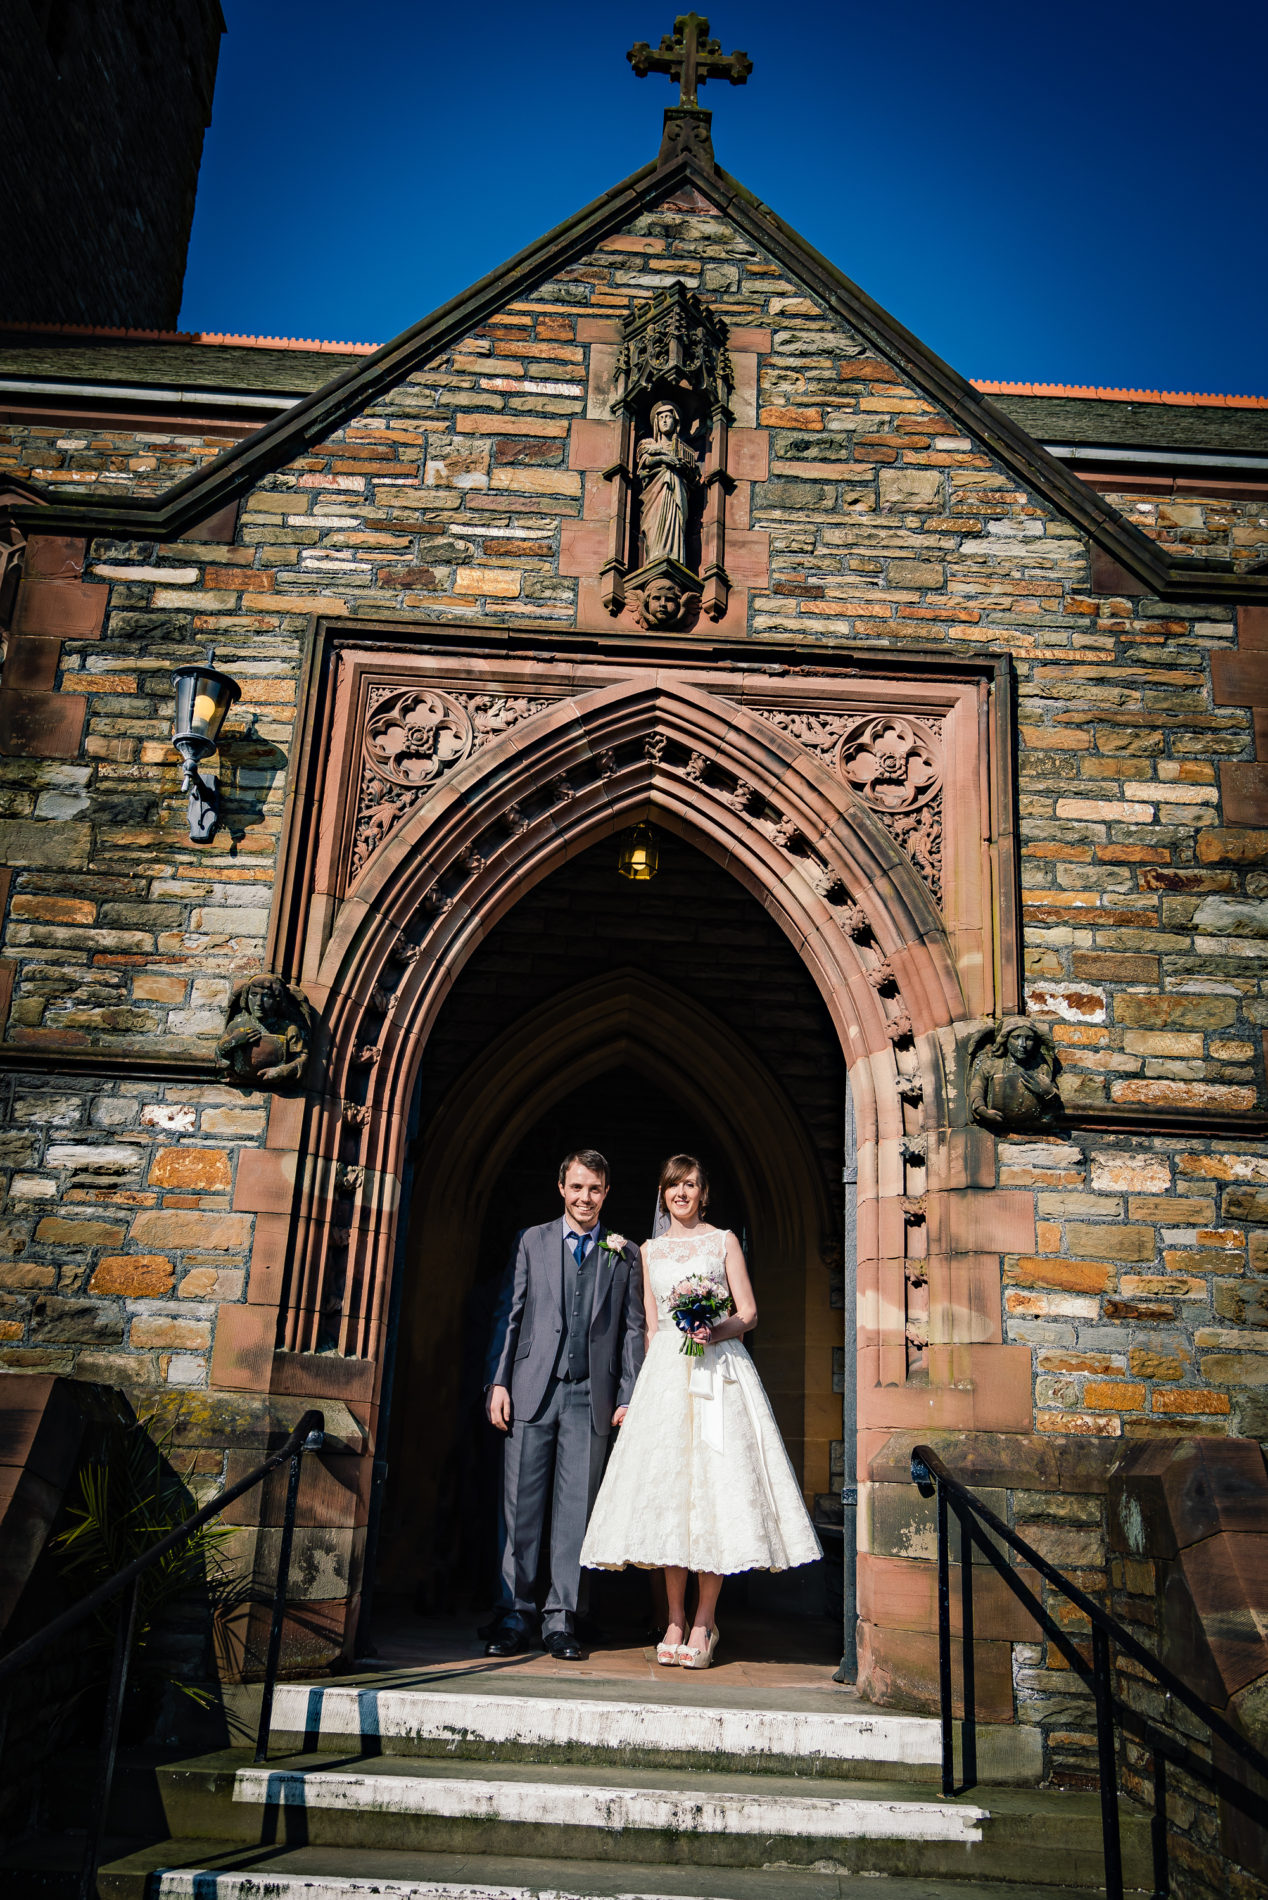 Wedding at Llanelli Parish Church 2013